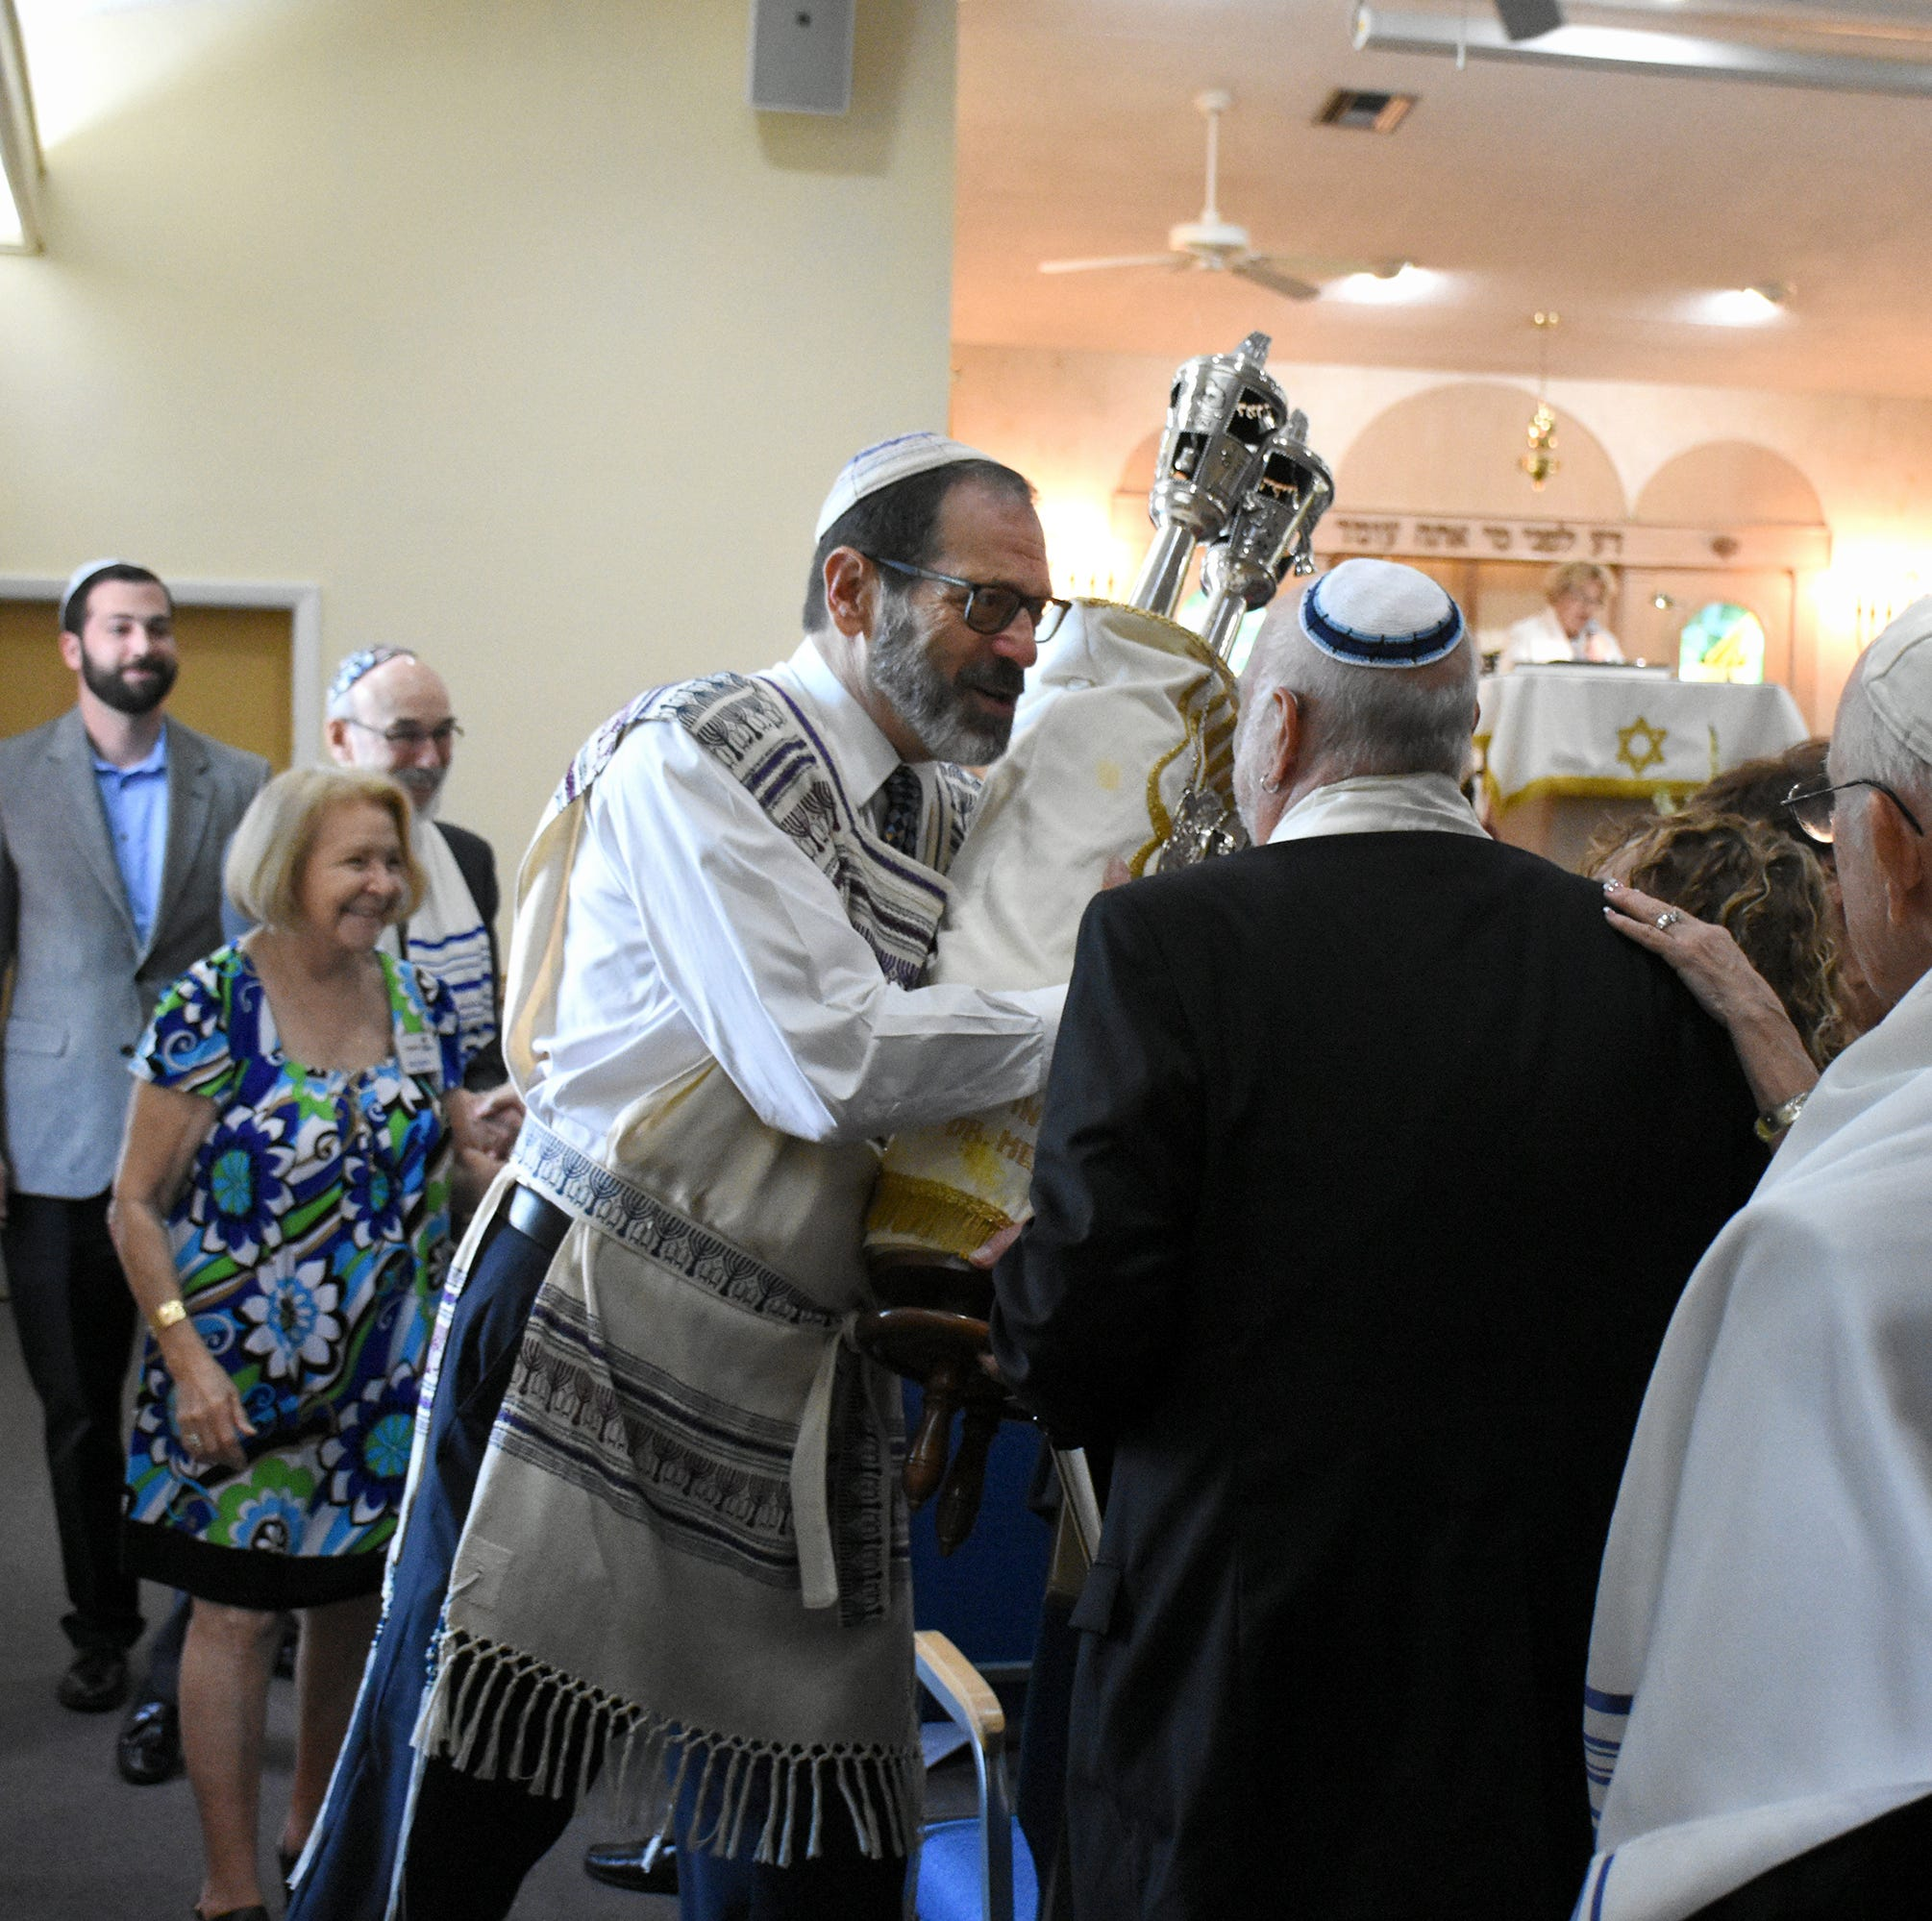 'A period of hope and new beginnings': JCMI celebrates Rosh Hashanah